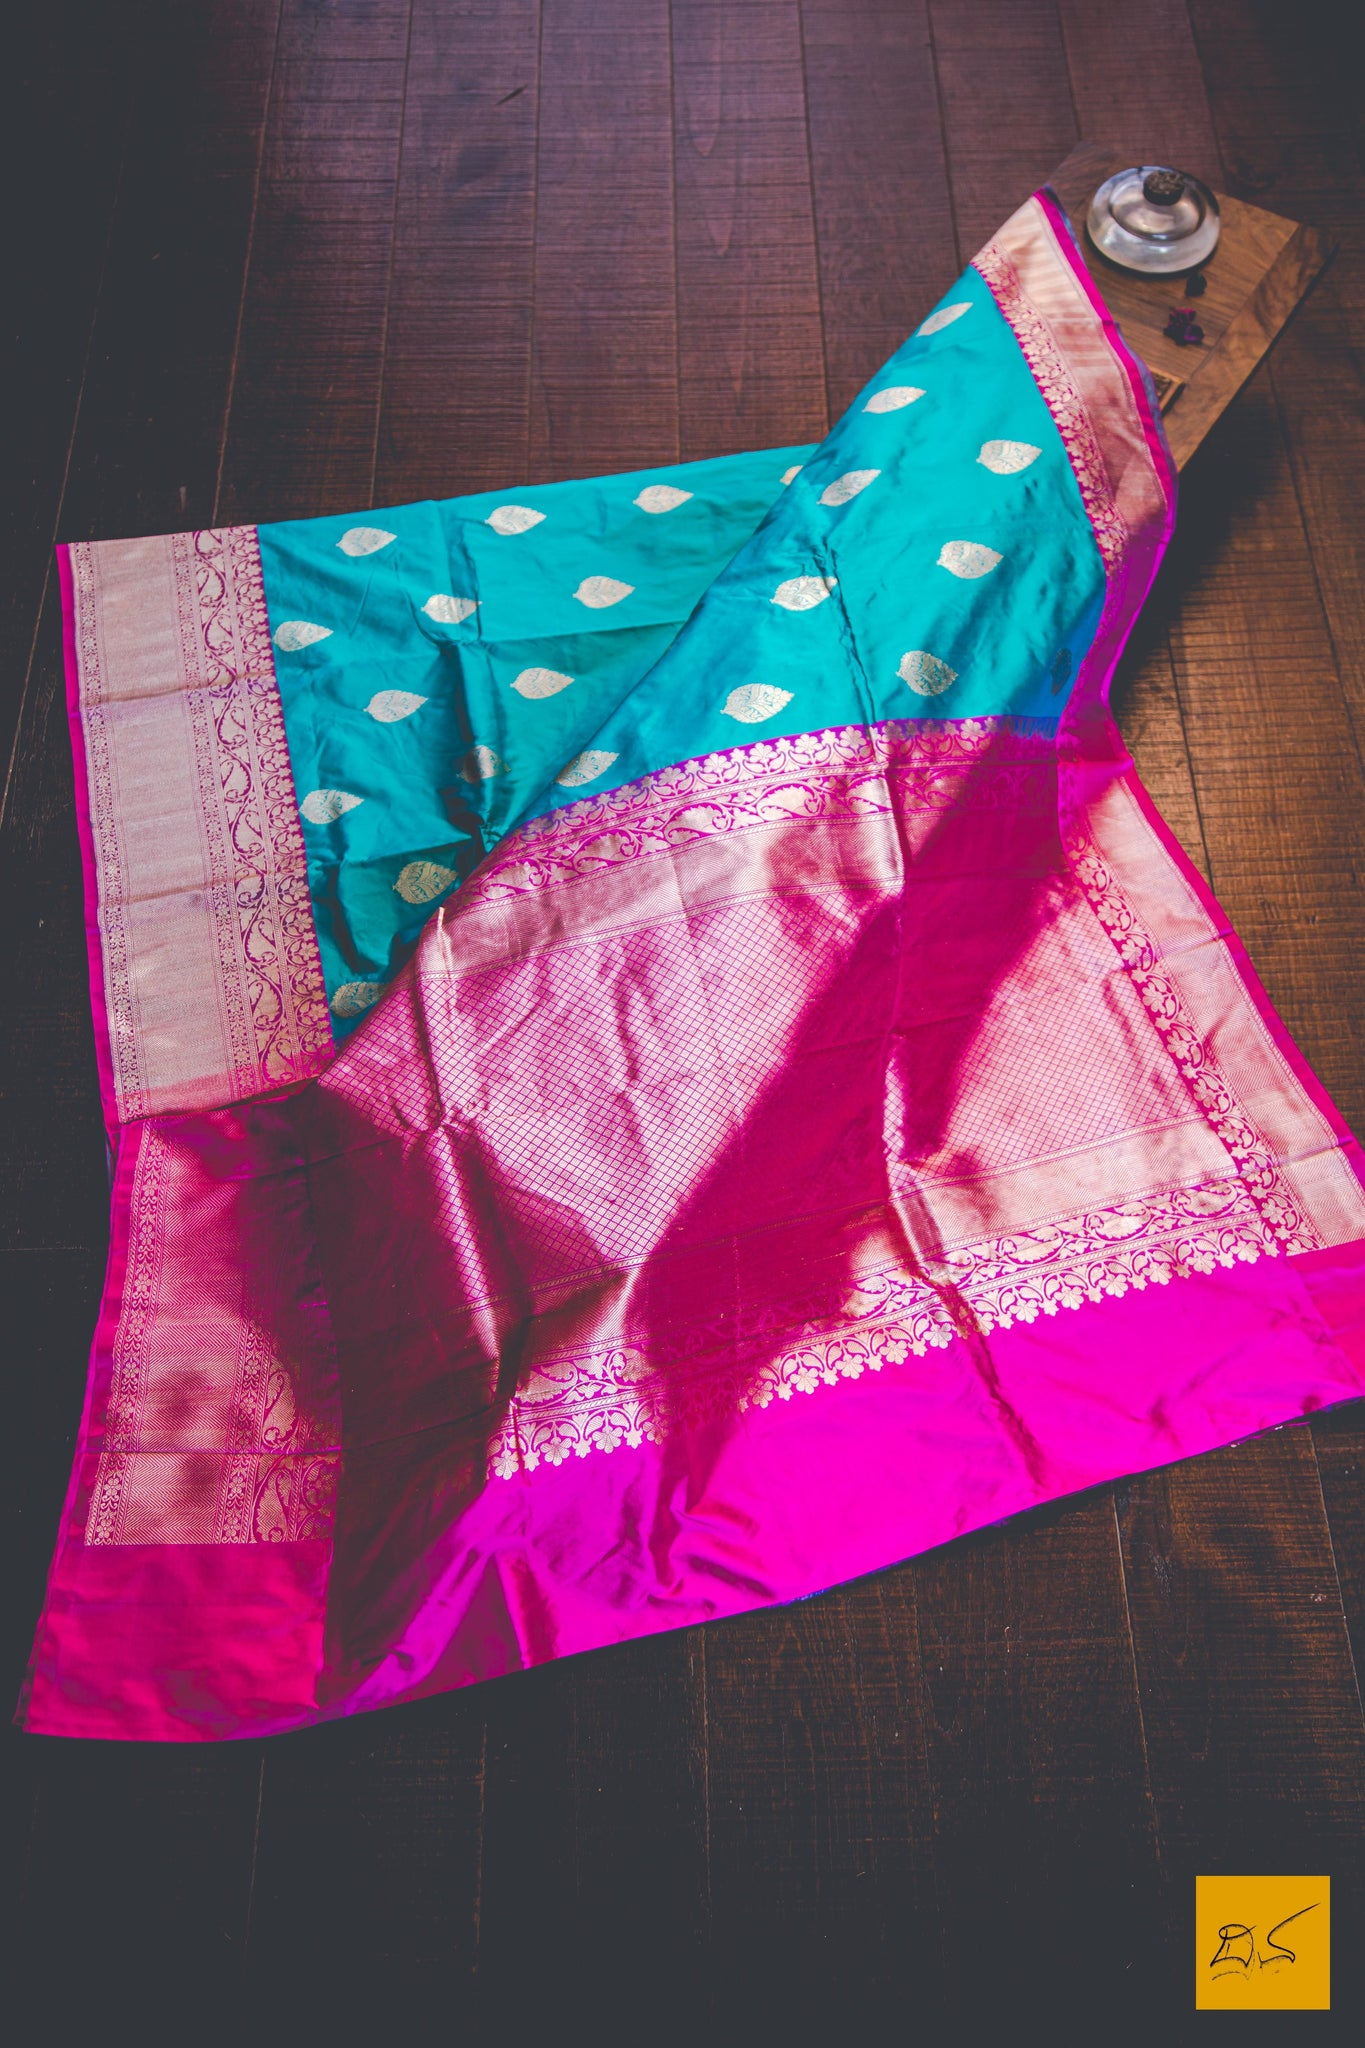 This is a beautiful katan silk banarasi sari with a blue and pink body. New trend of Banarasi Saree designs, Banarasi Saree for artists, art lovers, architects, saree lovers, Saree connoisseurs, musicians, dancers, doctors, Banarasi Katan silk saree, indian saree images, latest sarees with price, only saree images, new Banarasi saree design.